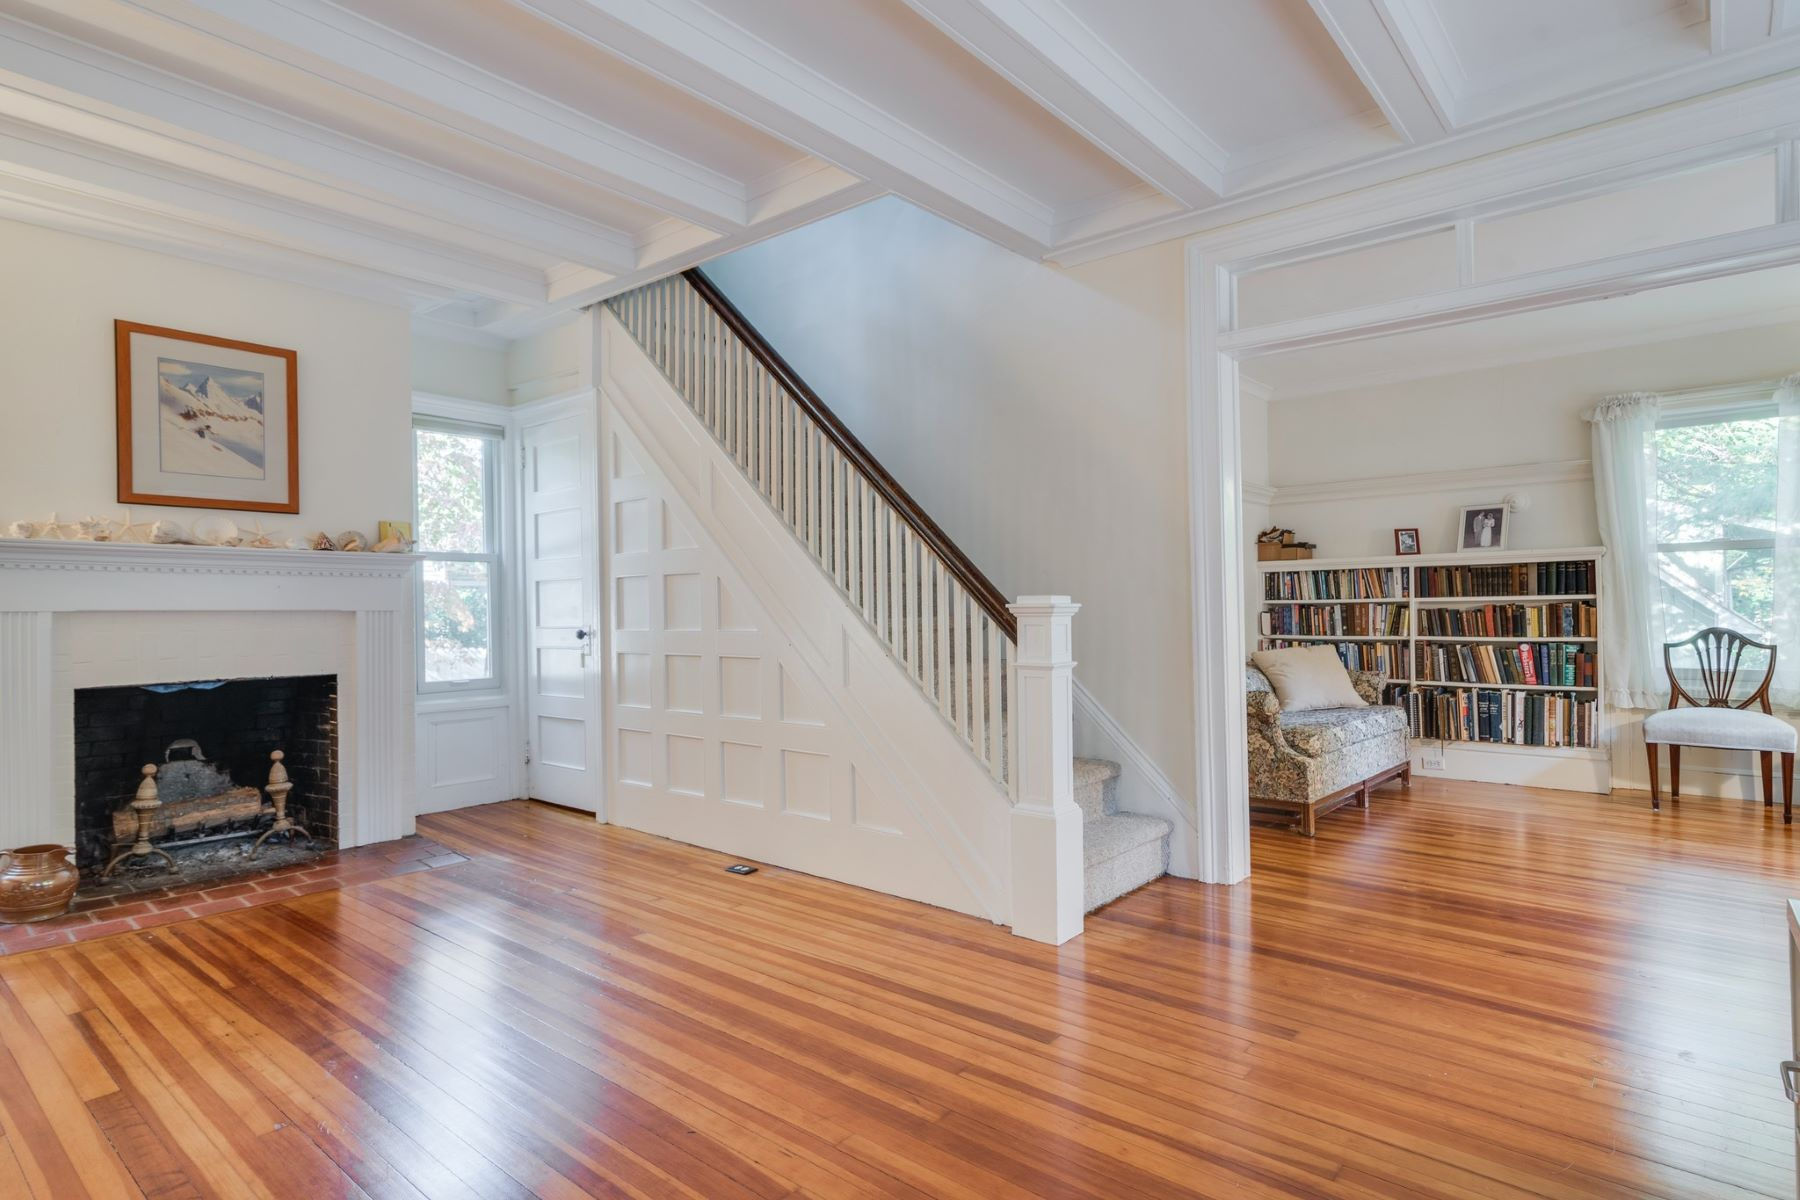 Single Family Homes for Sale at Mill Neck 399 Oyster Bay Rd Mill Neck, New York 11765 United States